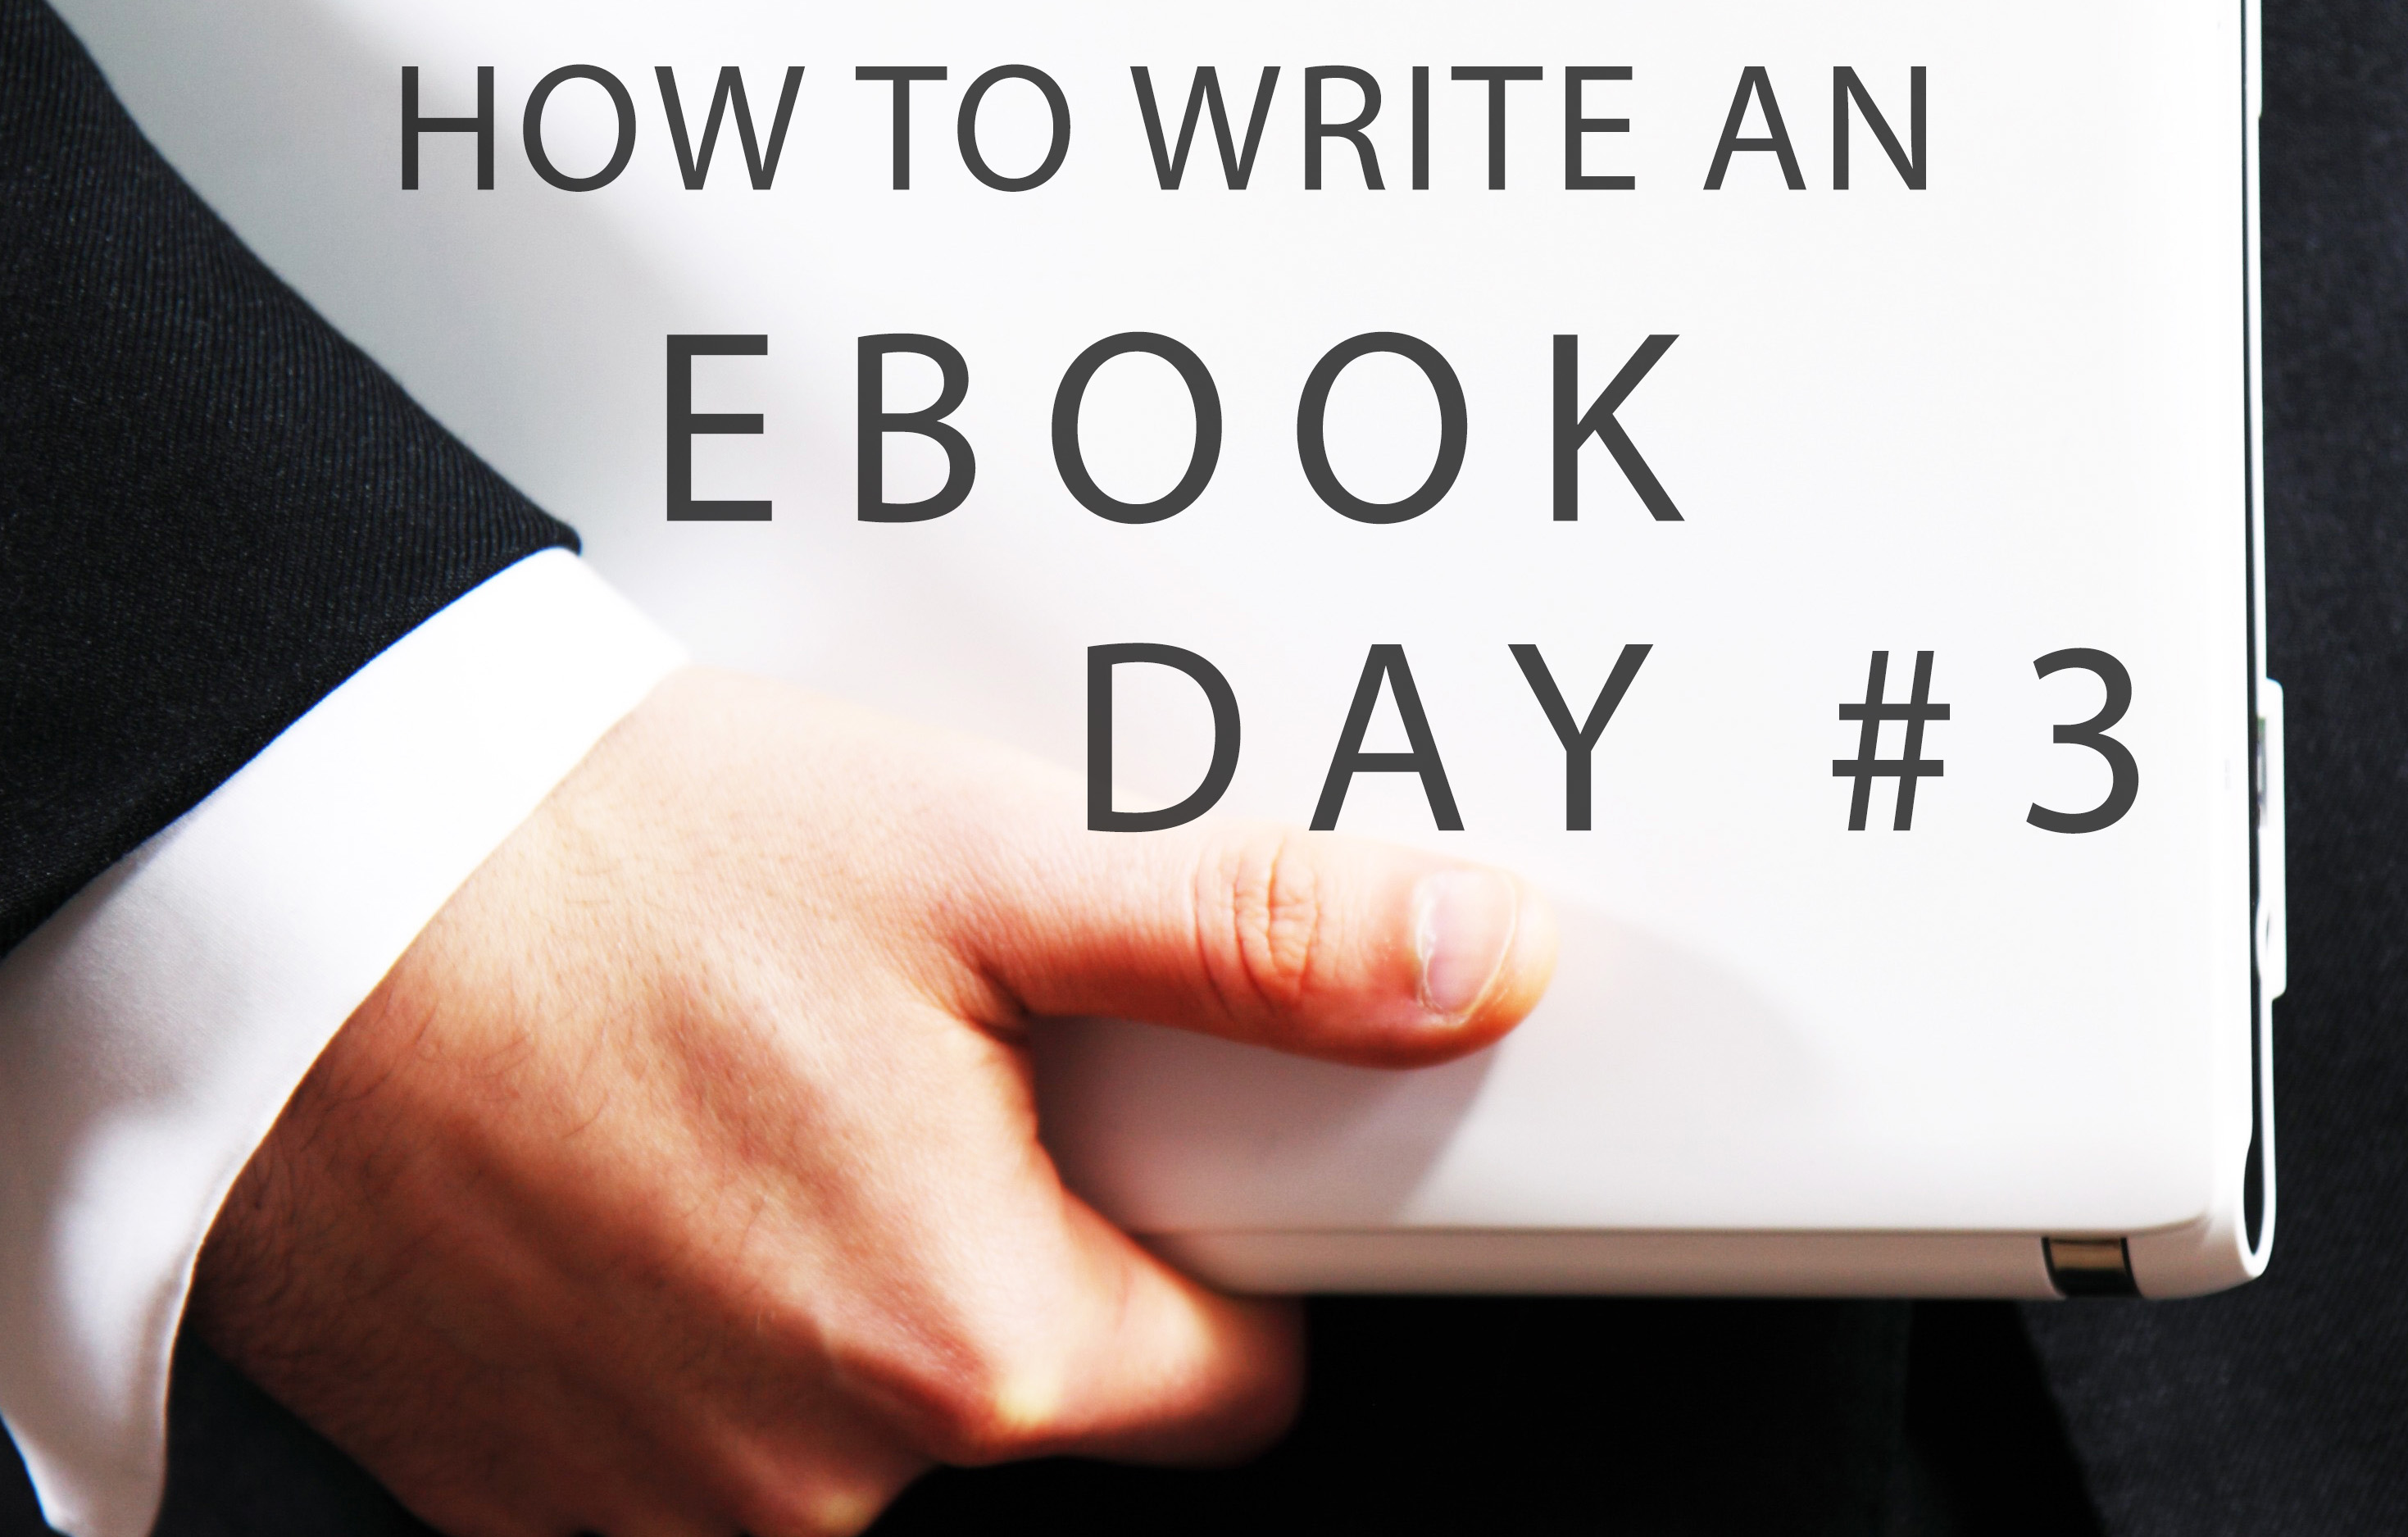 clue4u.com How to write an eBook day3